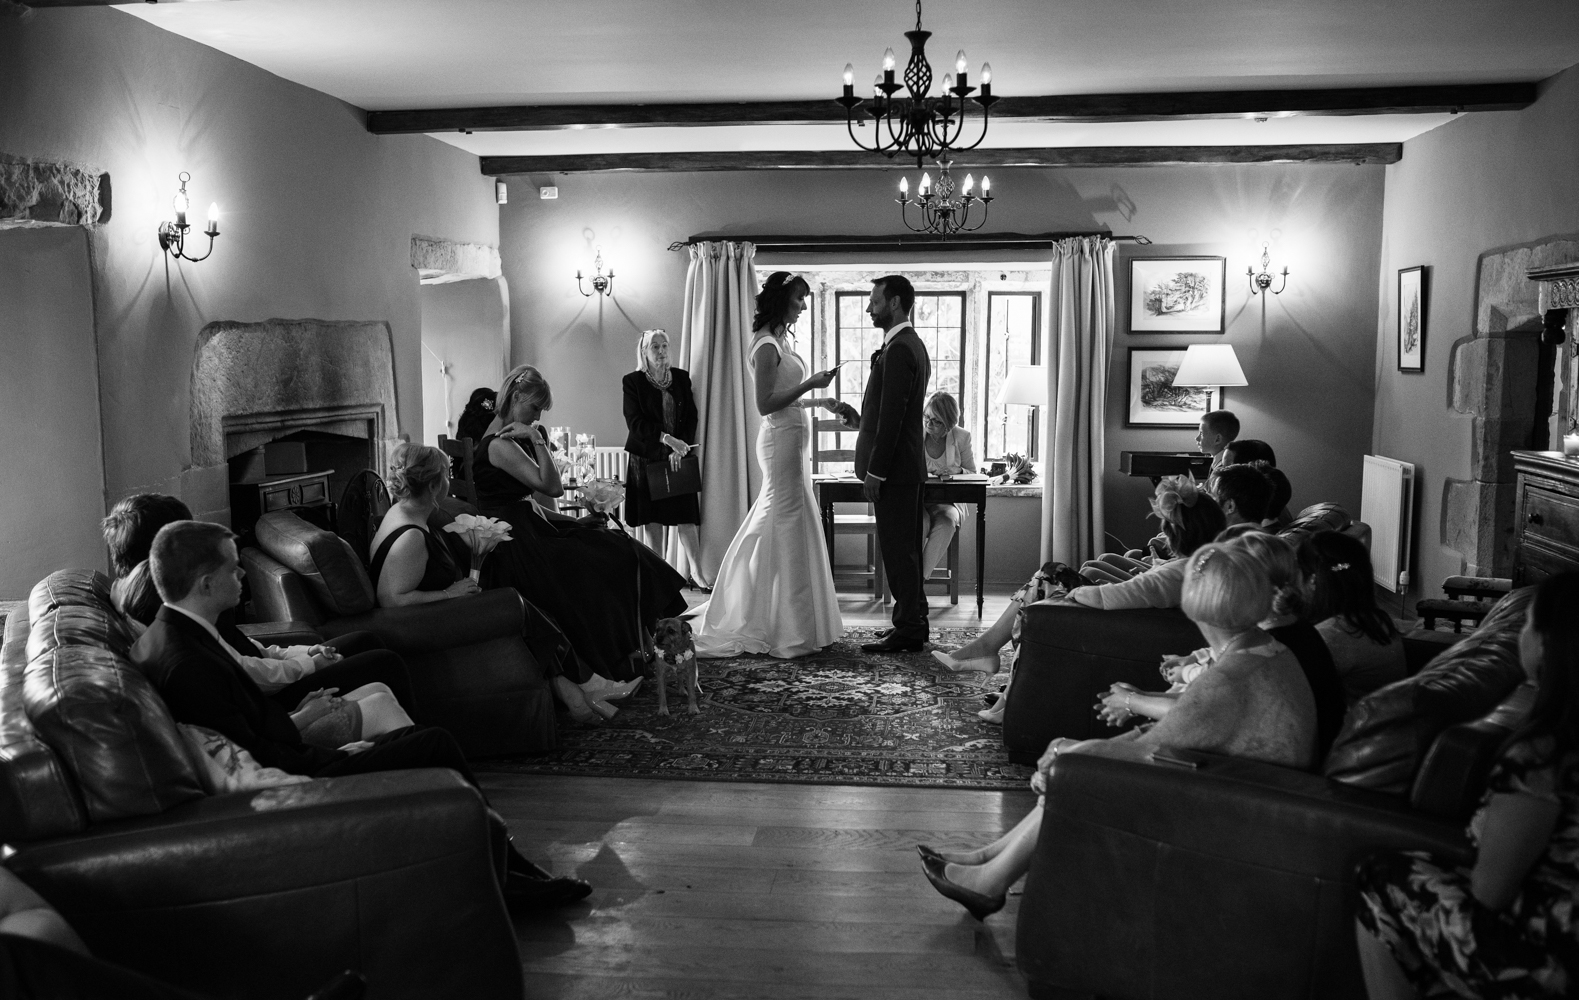 Black and white image from the back of the room while the bride and groom exchange their wedding vows